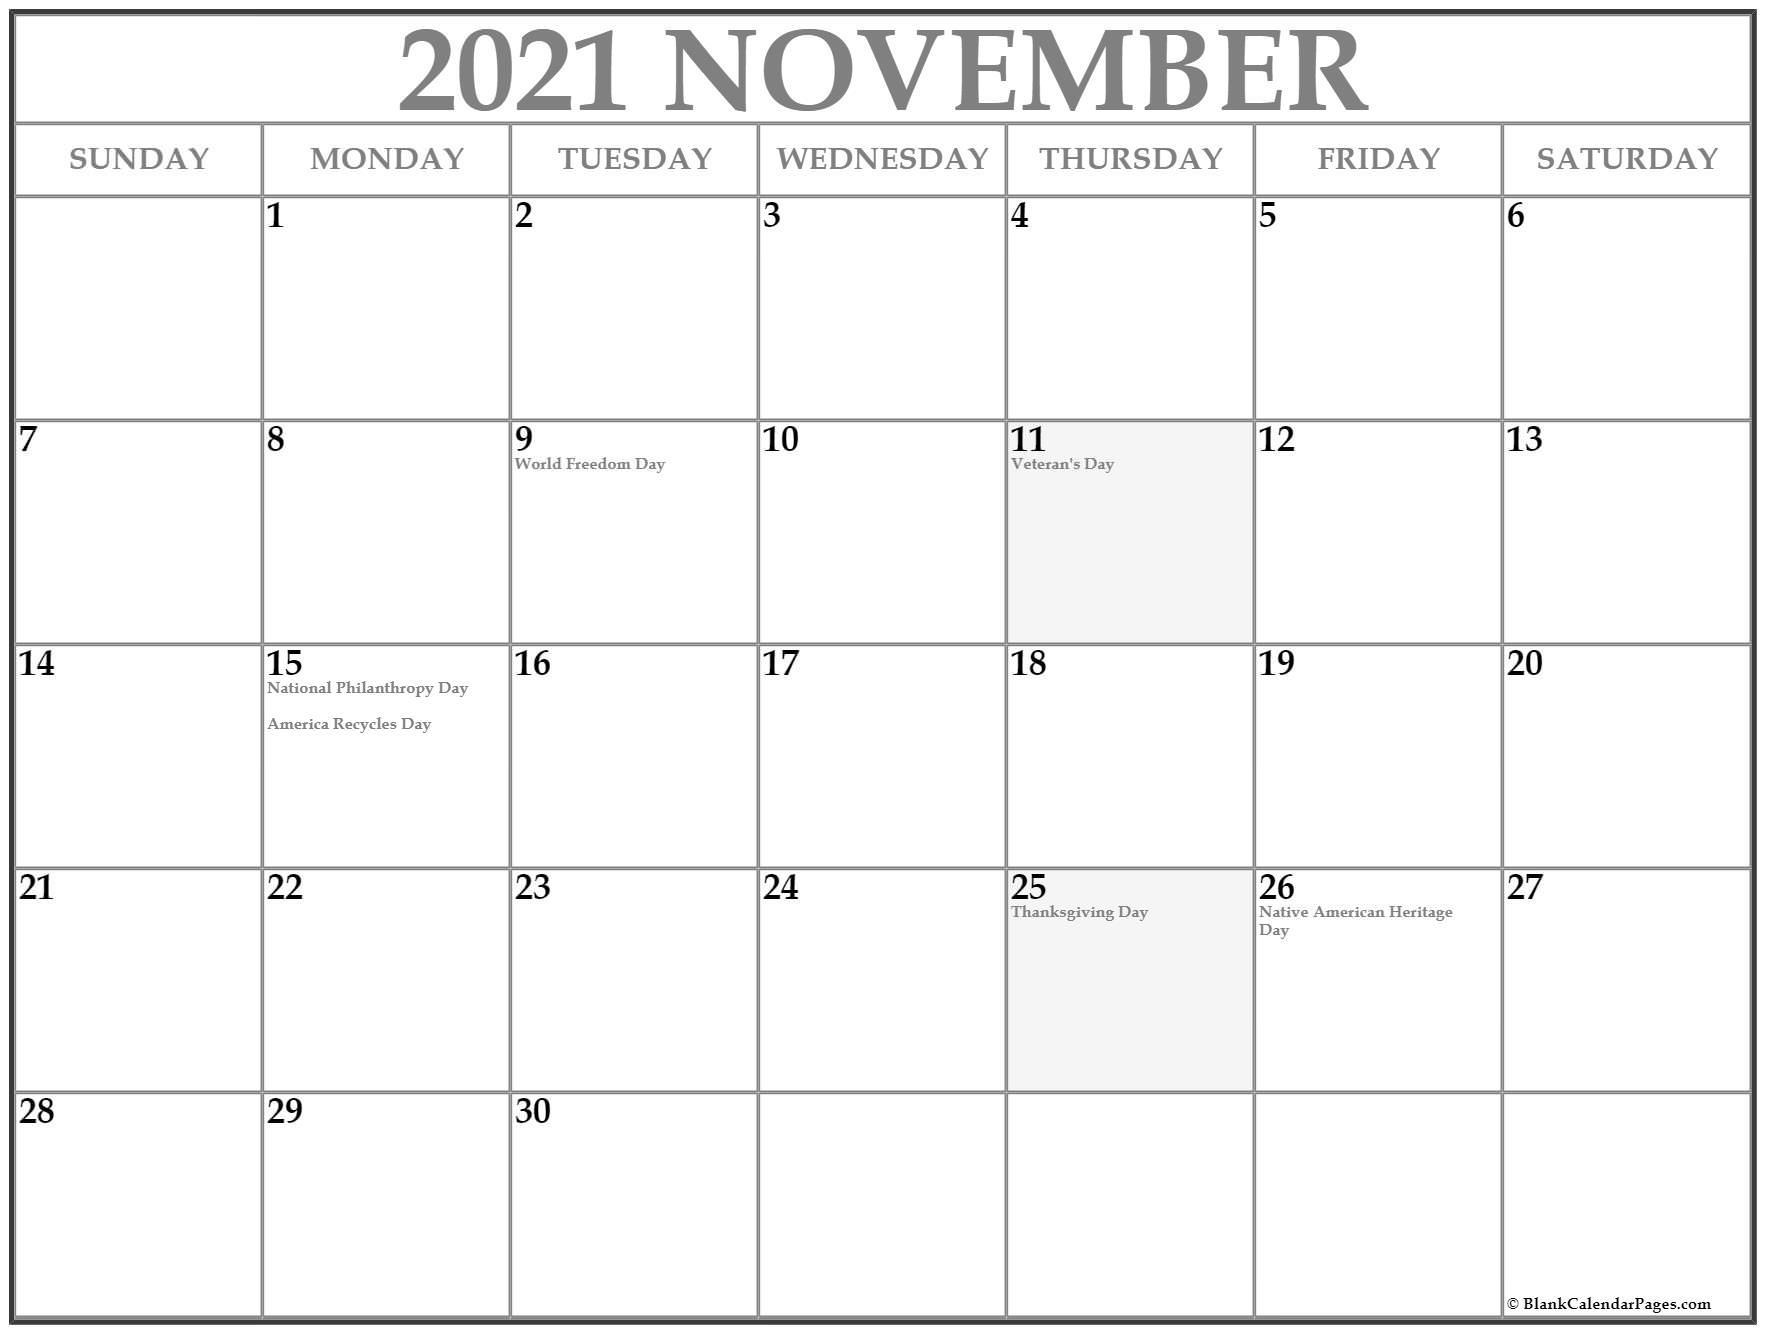 November USA holidays calendar